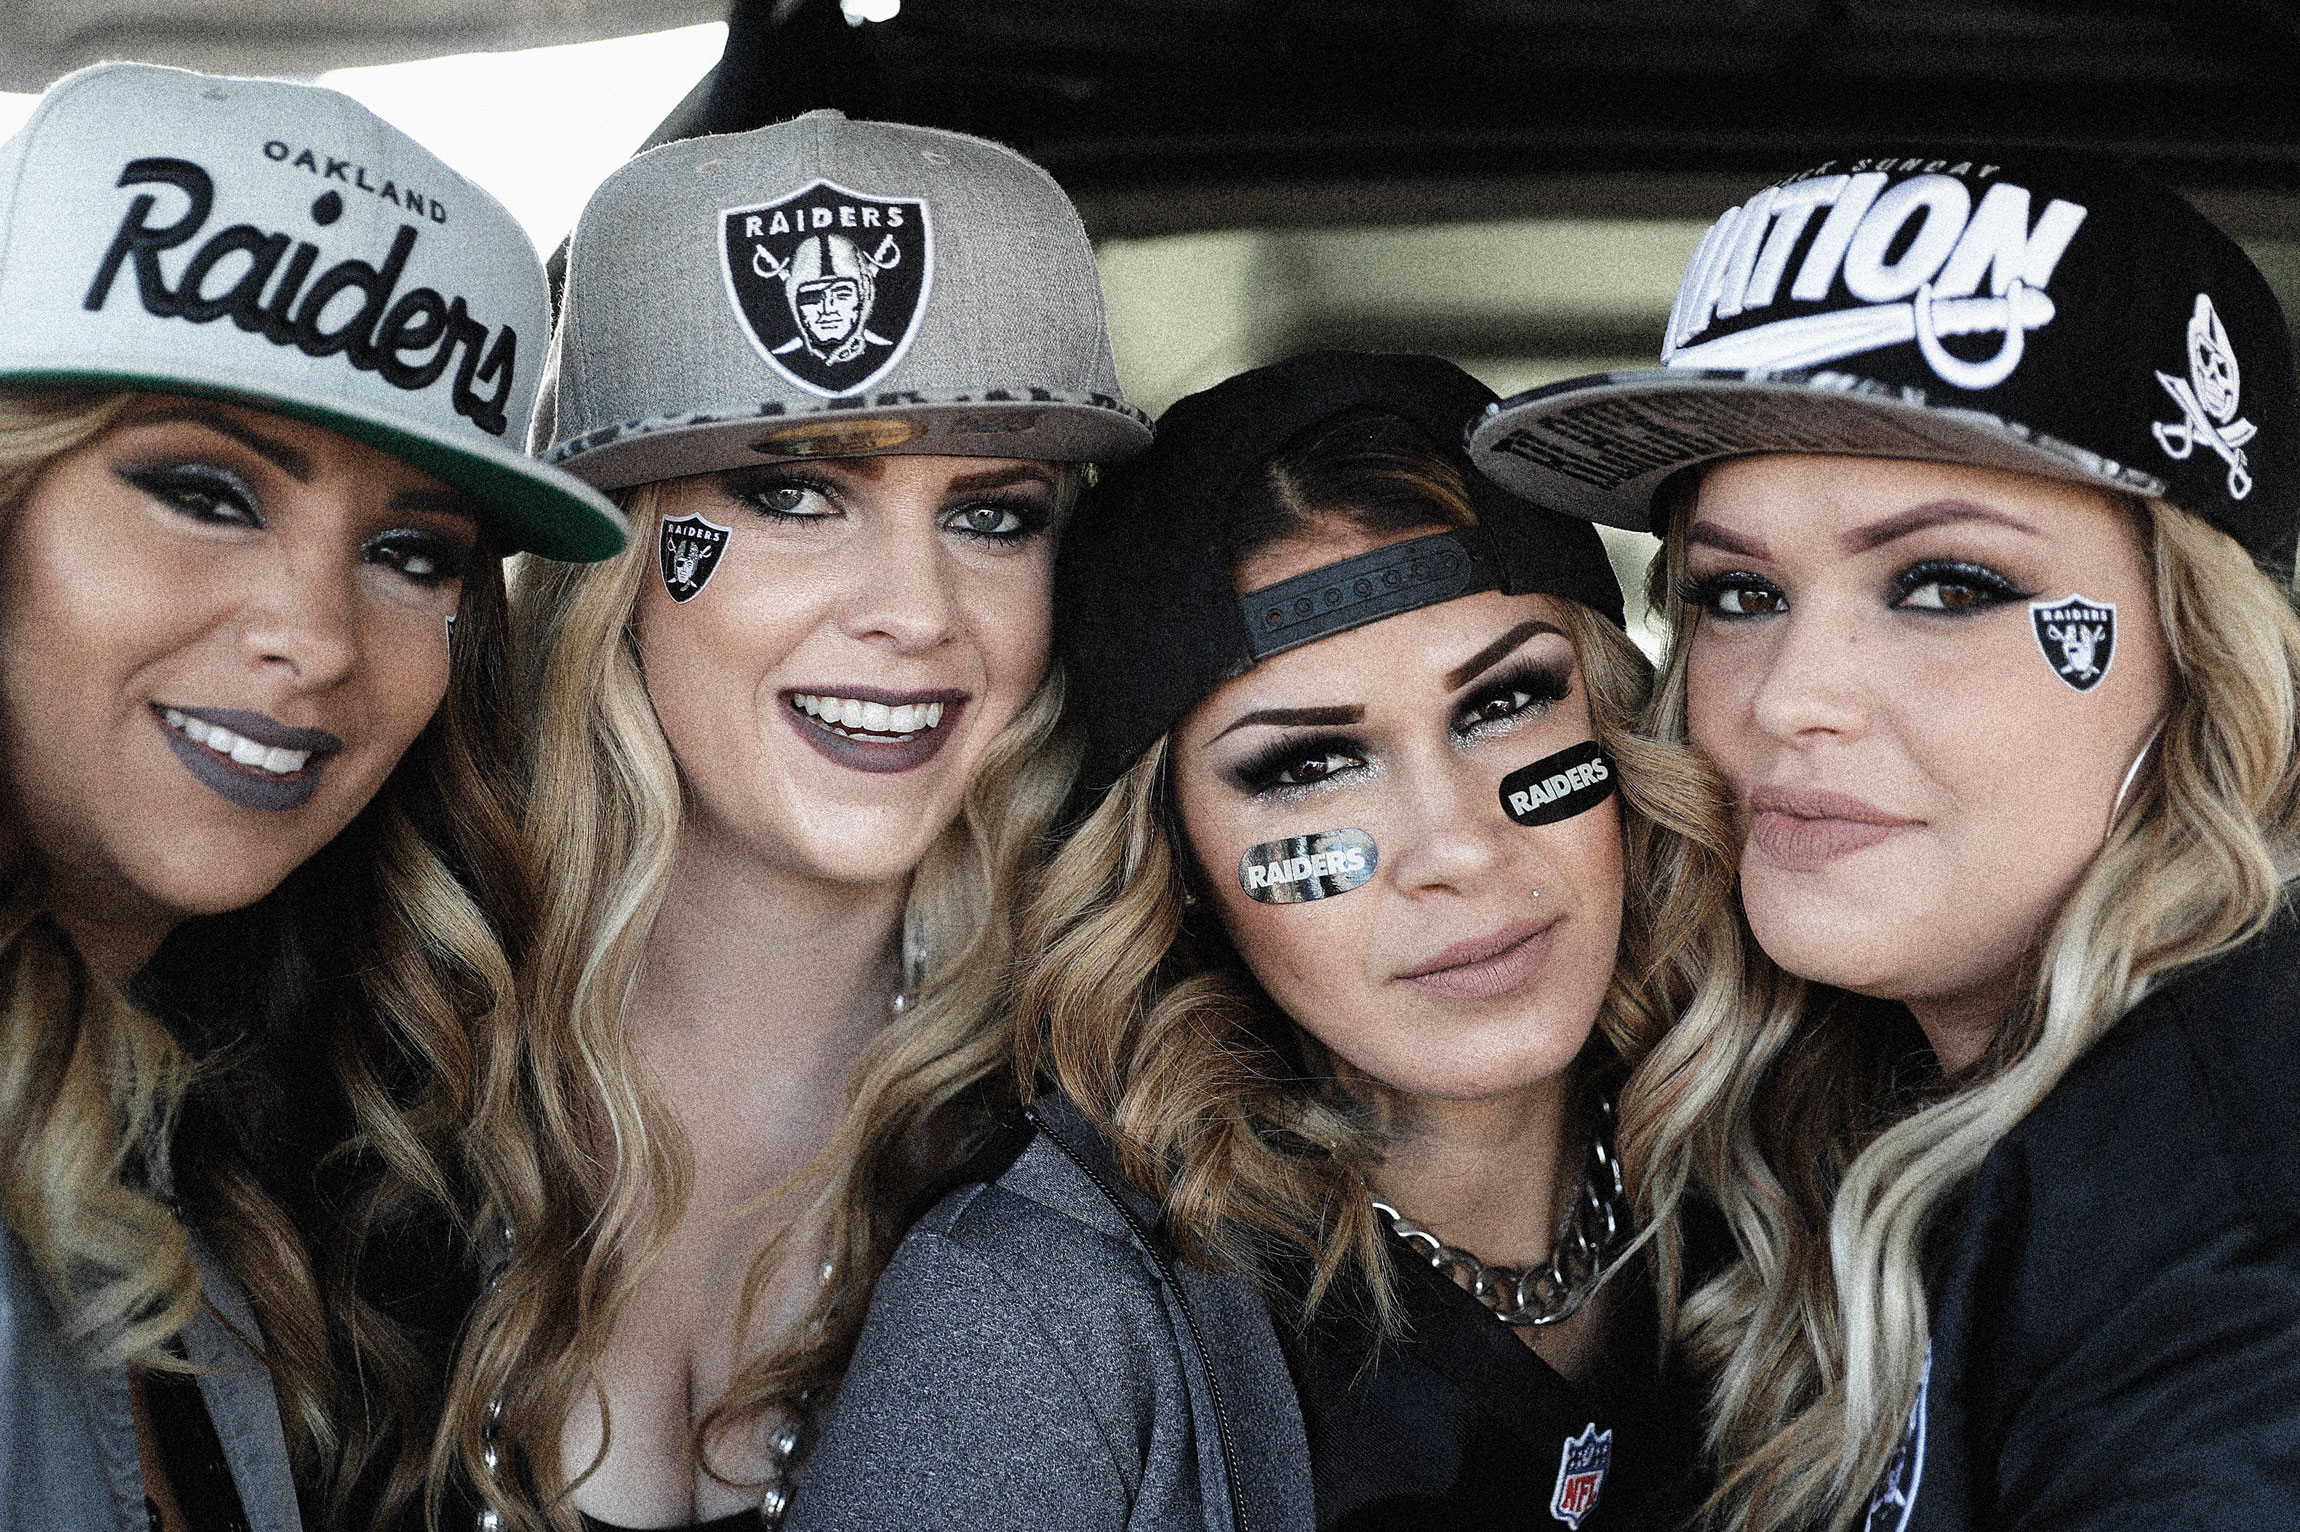 Real fans wear black: An introduction to Raider Nation - Las